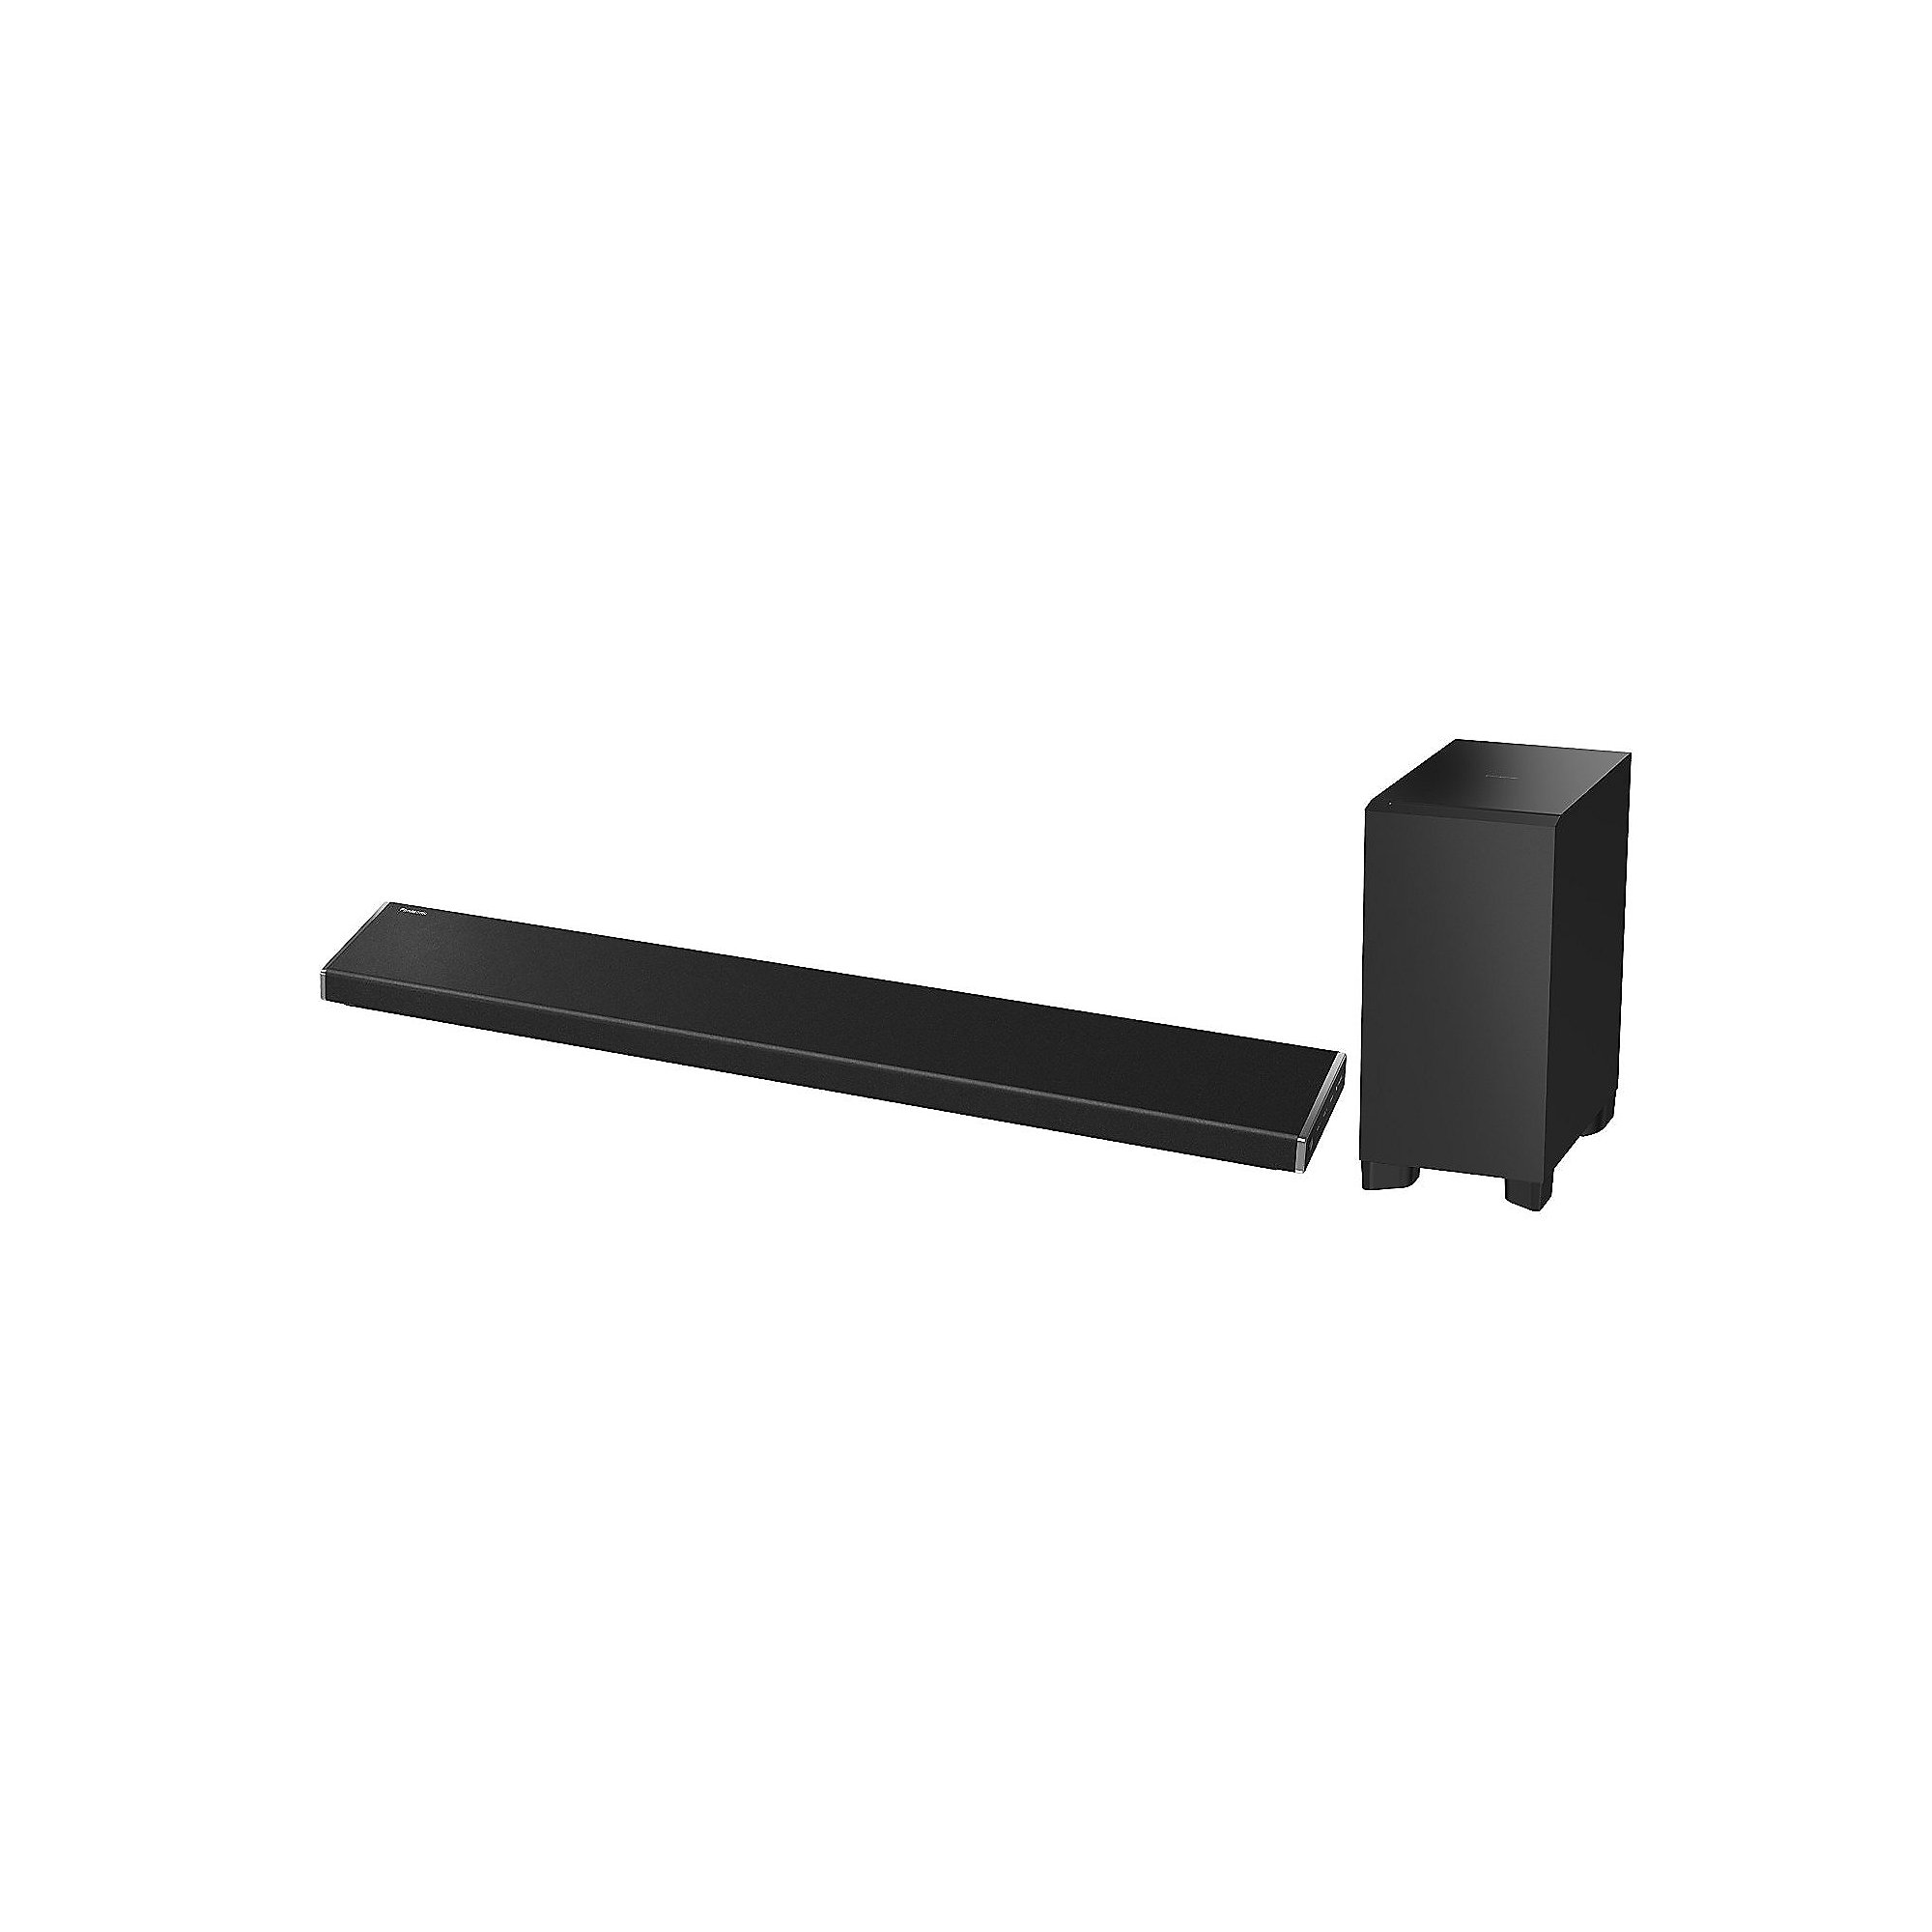 Panasonic SC-ALL70TEGK  3.1 ALL-Soundbar mit kabellosem Subwoofer & Bluetooth